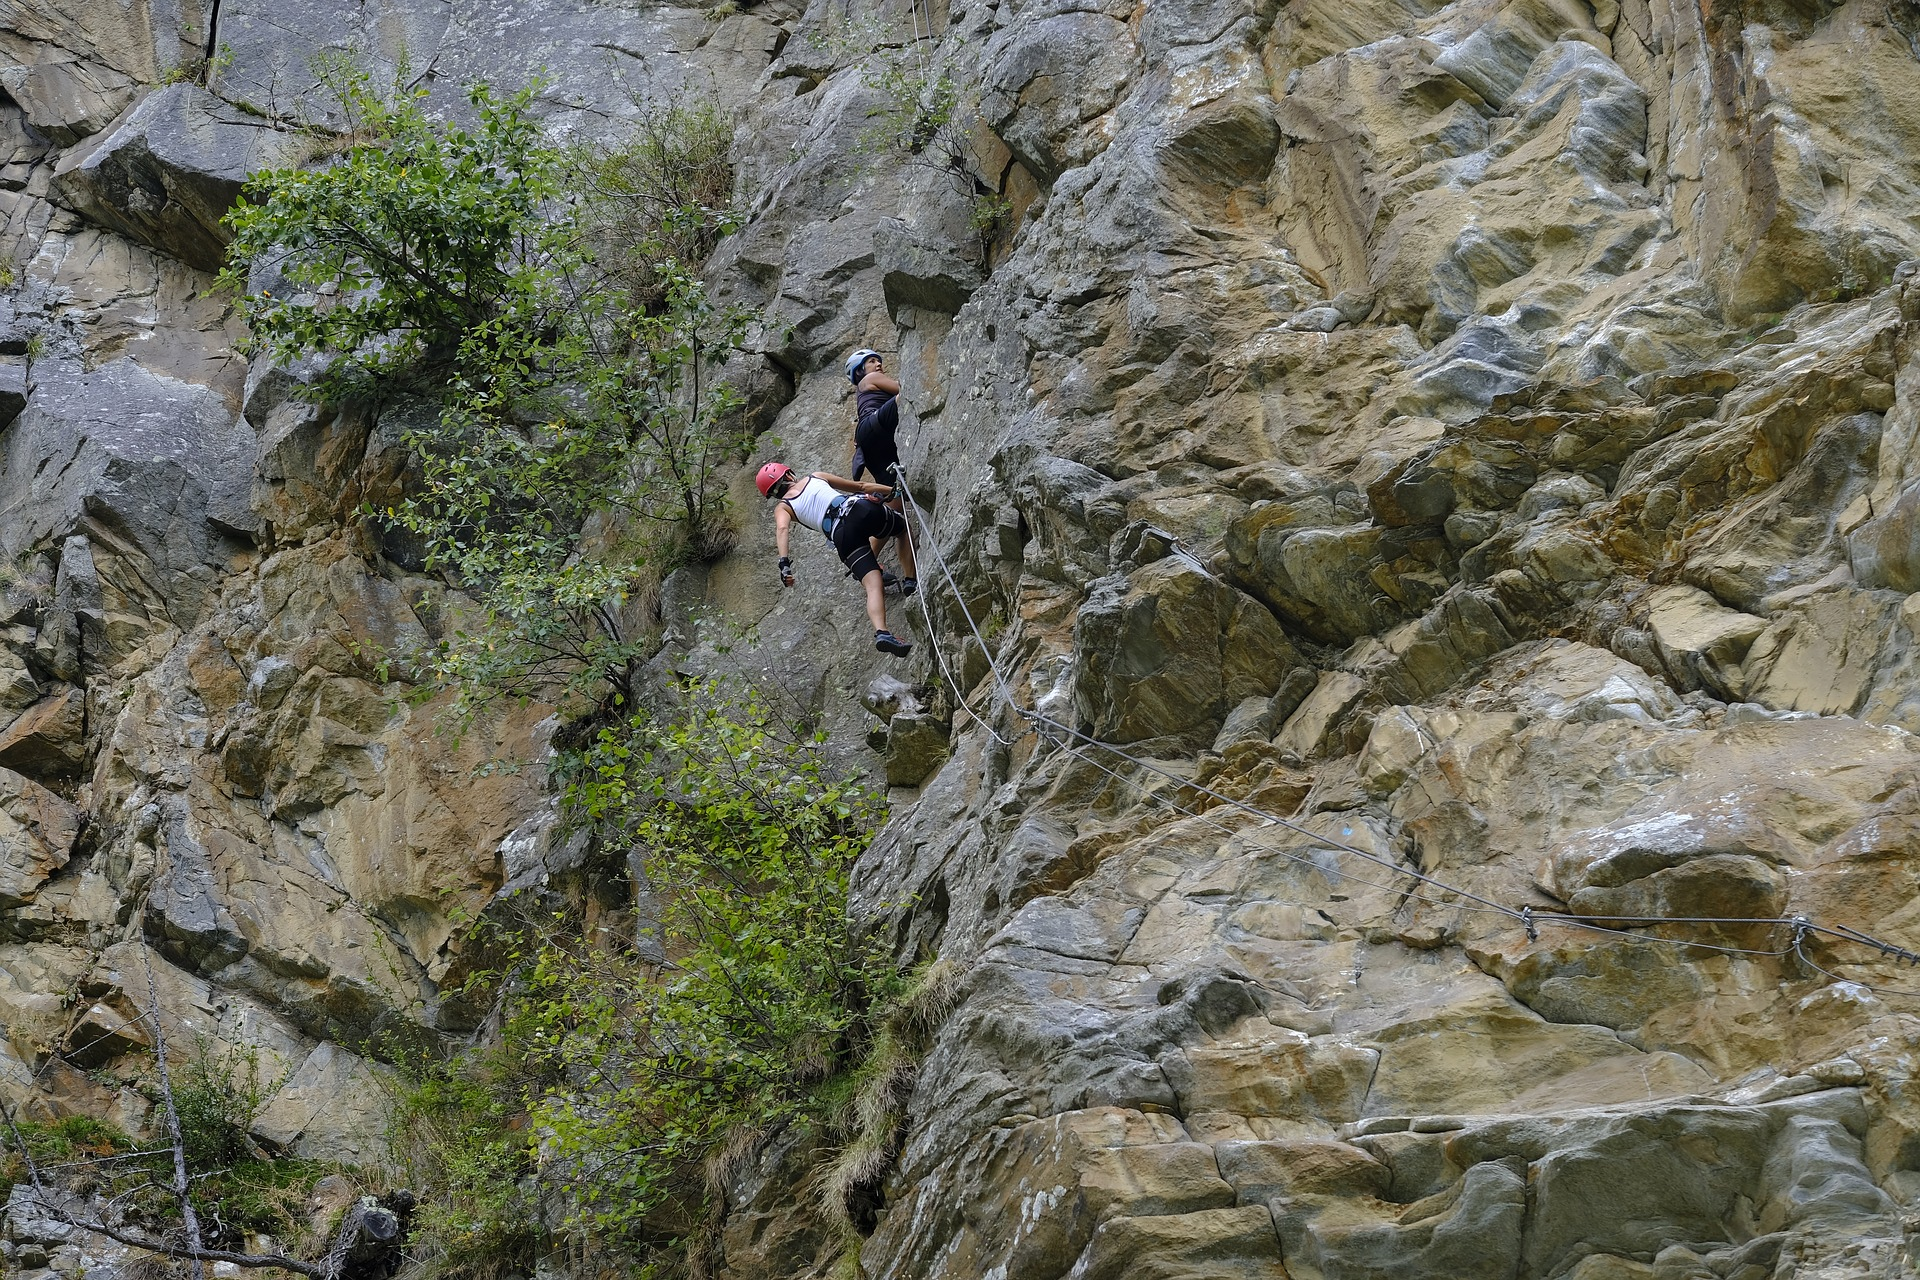 Rock Climbing Places Outdoor Rock Climbing Near Me Rock Climbing Destinations Famous Rock